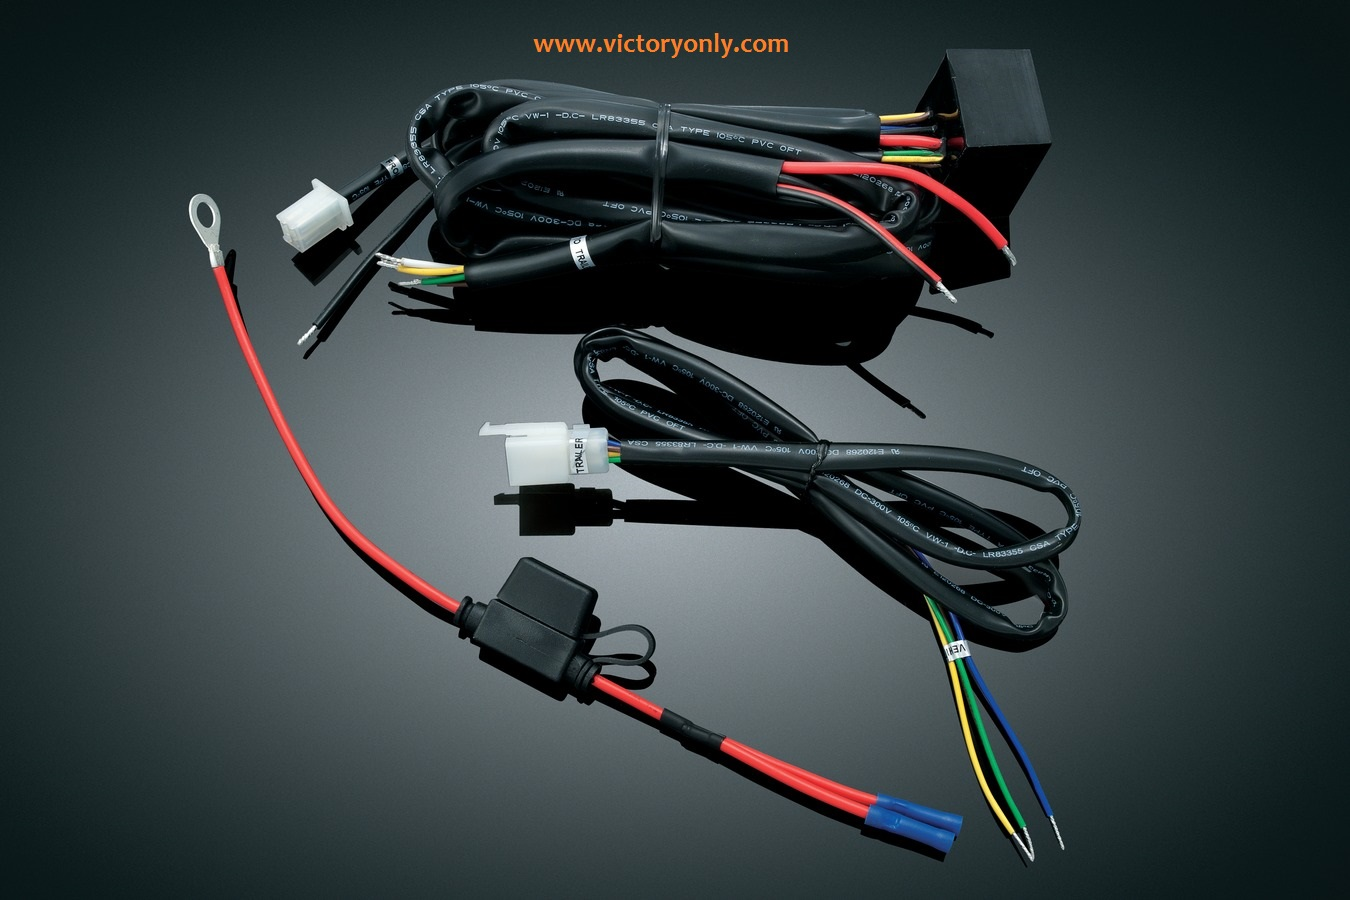 16997_kur_7671_tt_u_13_1350x900_RGB_72DPI trailer wiring harnesses for victory motorcycle Universal Wiring Harness Diagram at pacquiaovsvargaslive.co